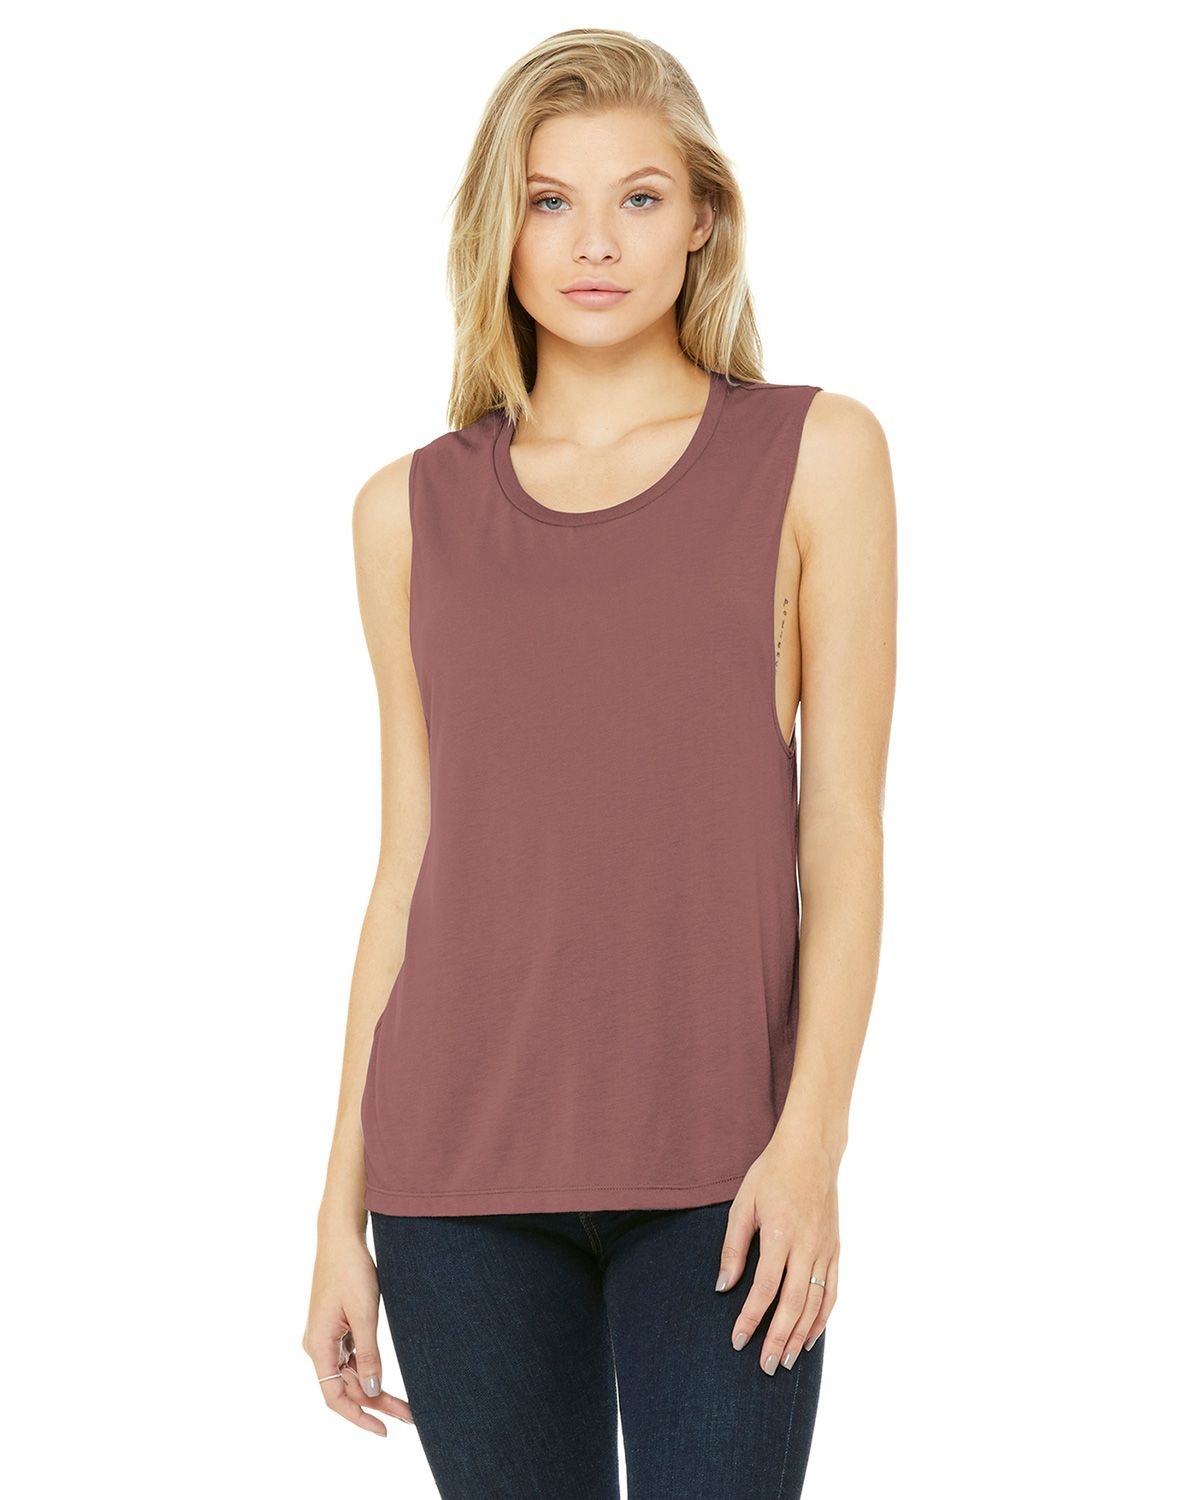 Bella + Canvas BC8803 Women's Flowy Scoop Muscle Tank - Mauve - S from Bella + Canvas